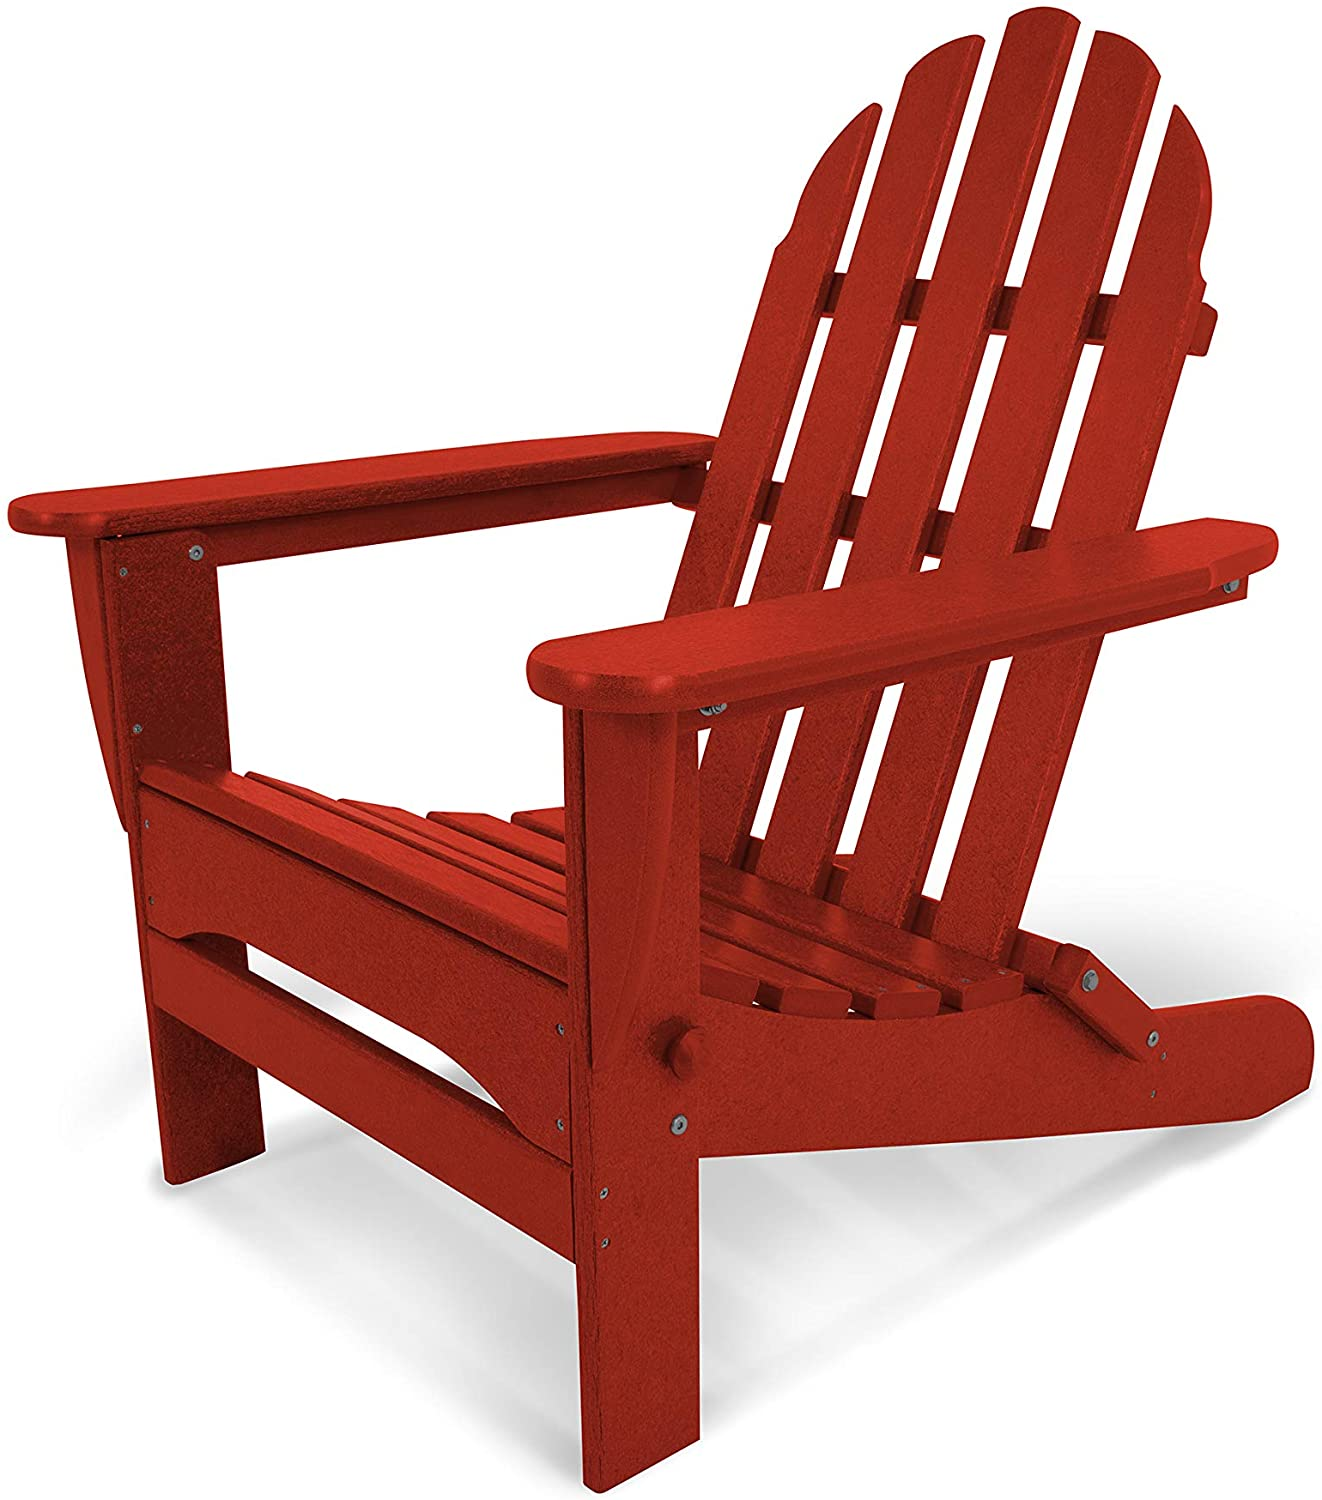 POLYWOOD AD5030CR Classic Folding Adirondack Chair,Crimson Red